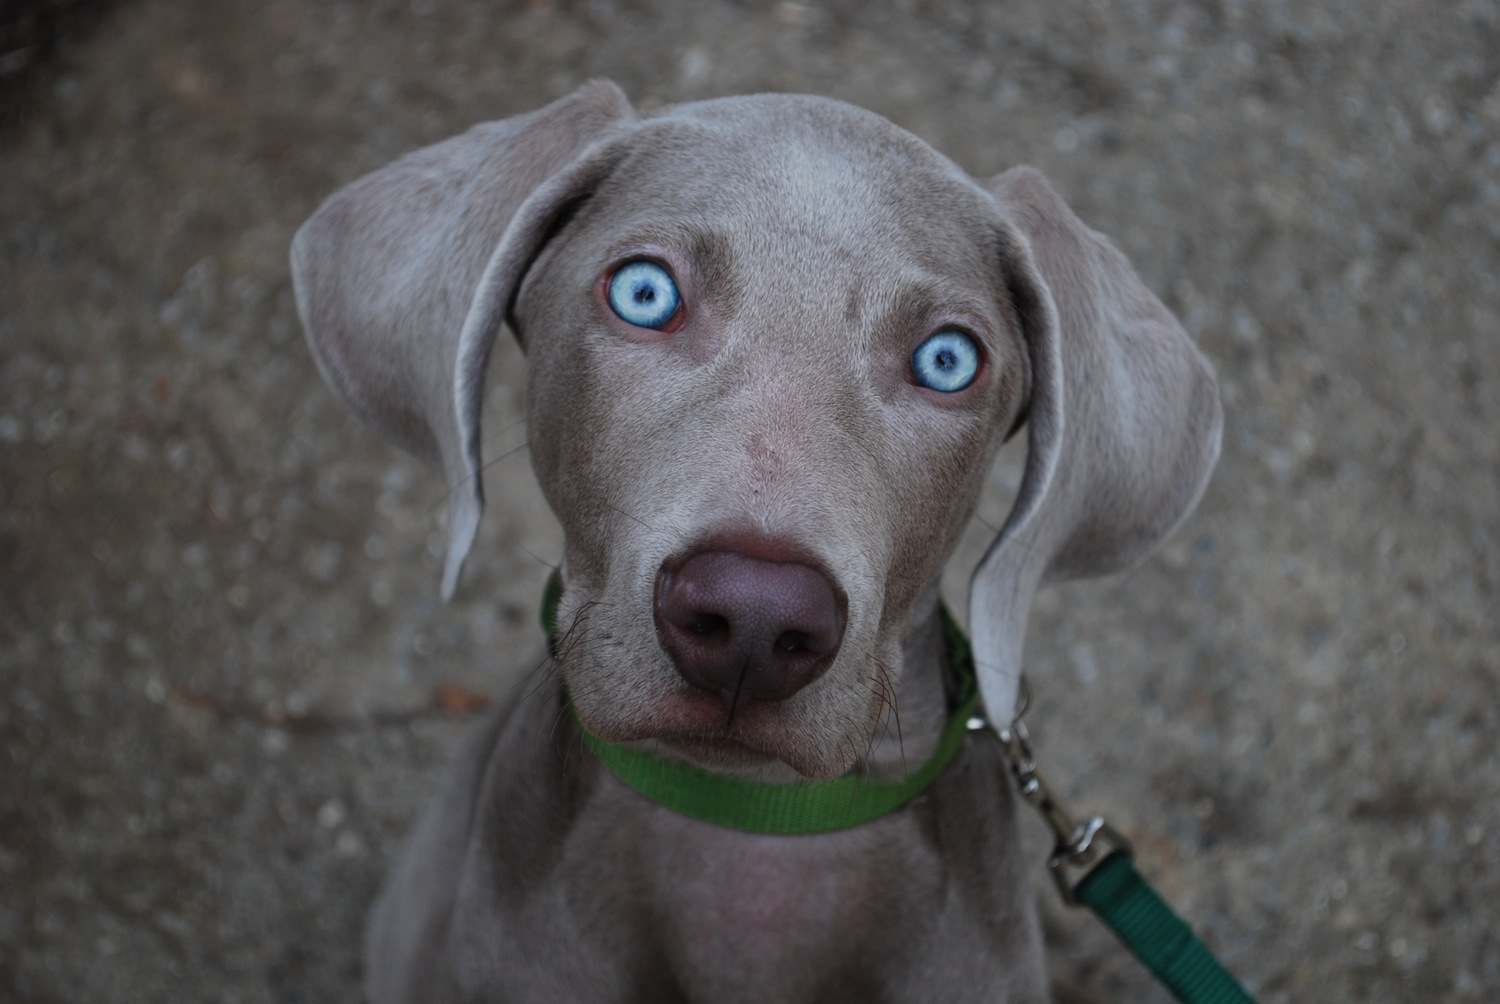 Cute Wallpapers Of Kittens And Puppies Whitney S Photo Blog Spencer The Weimaraner Dog